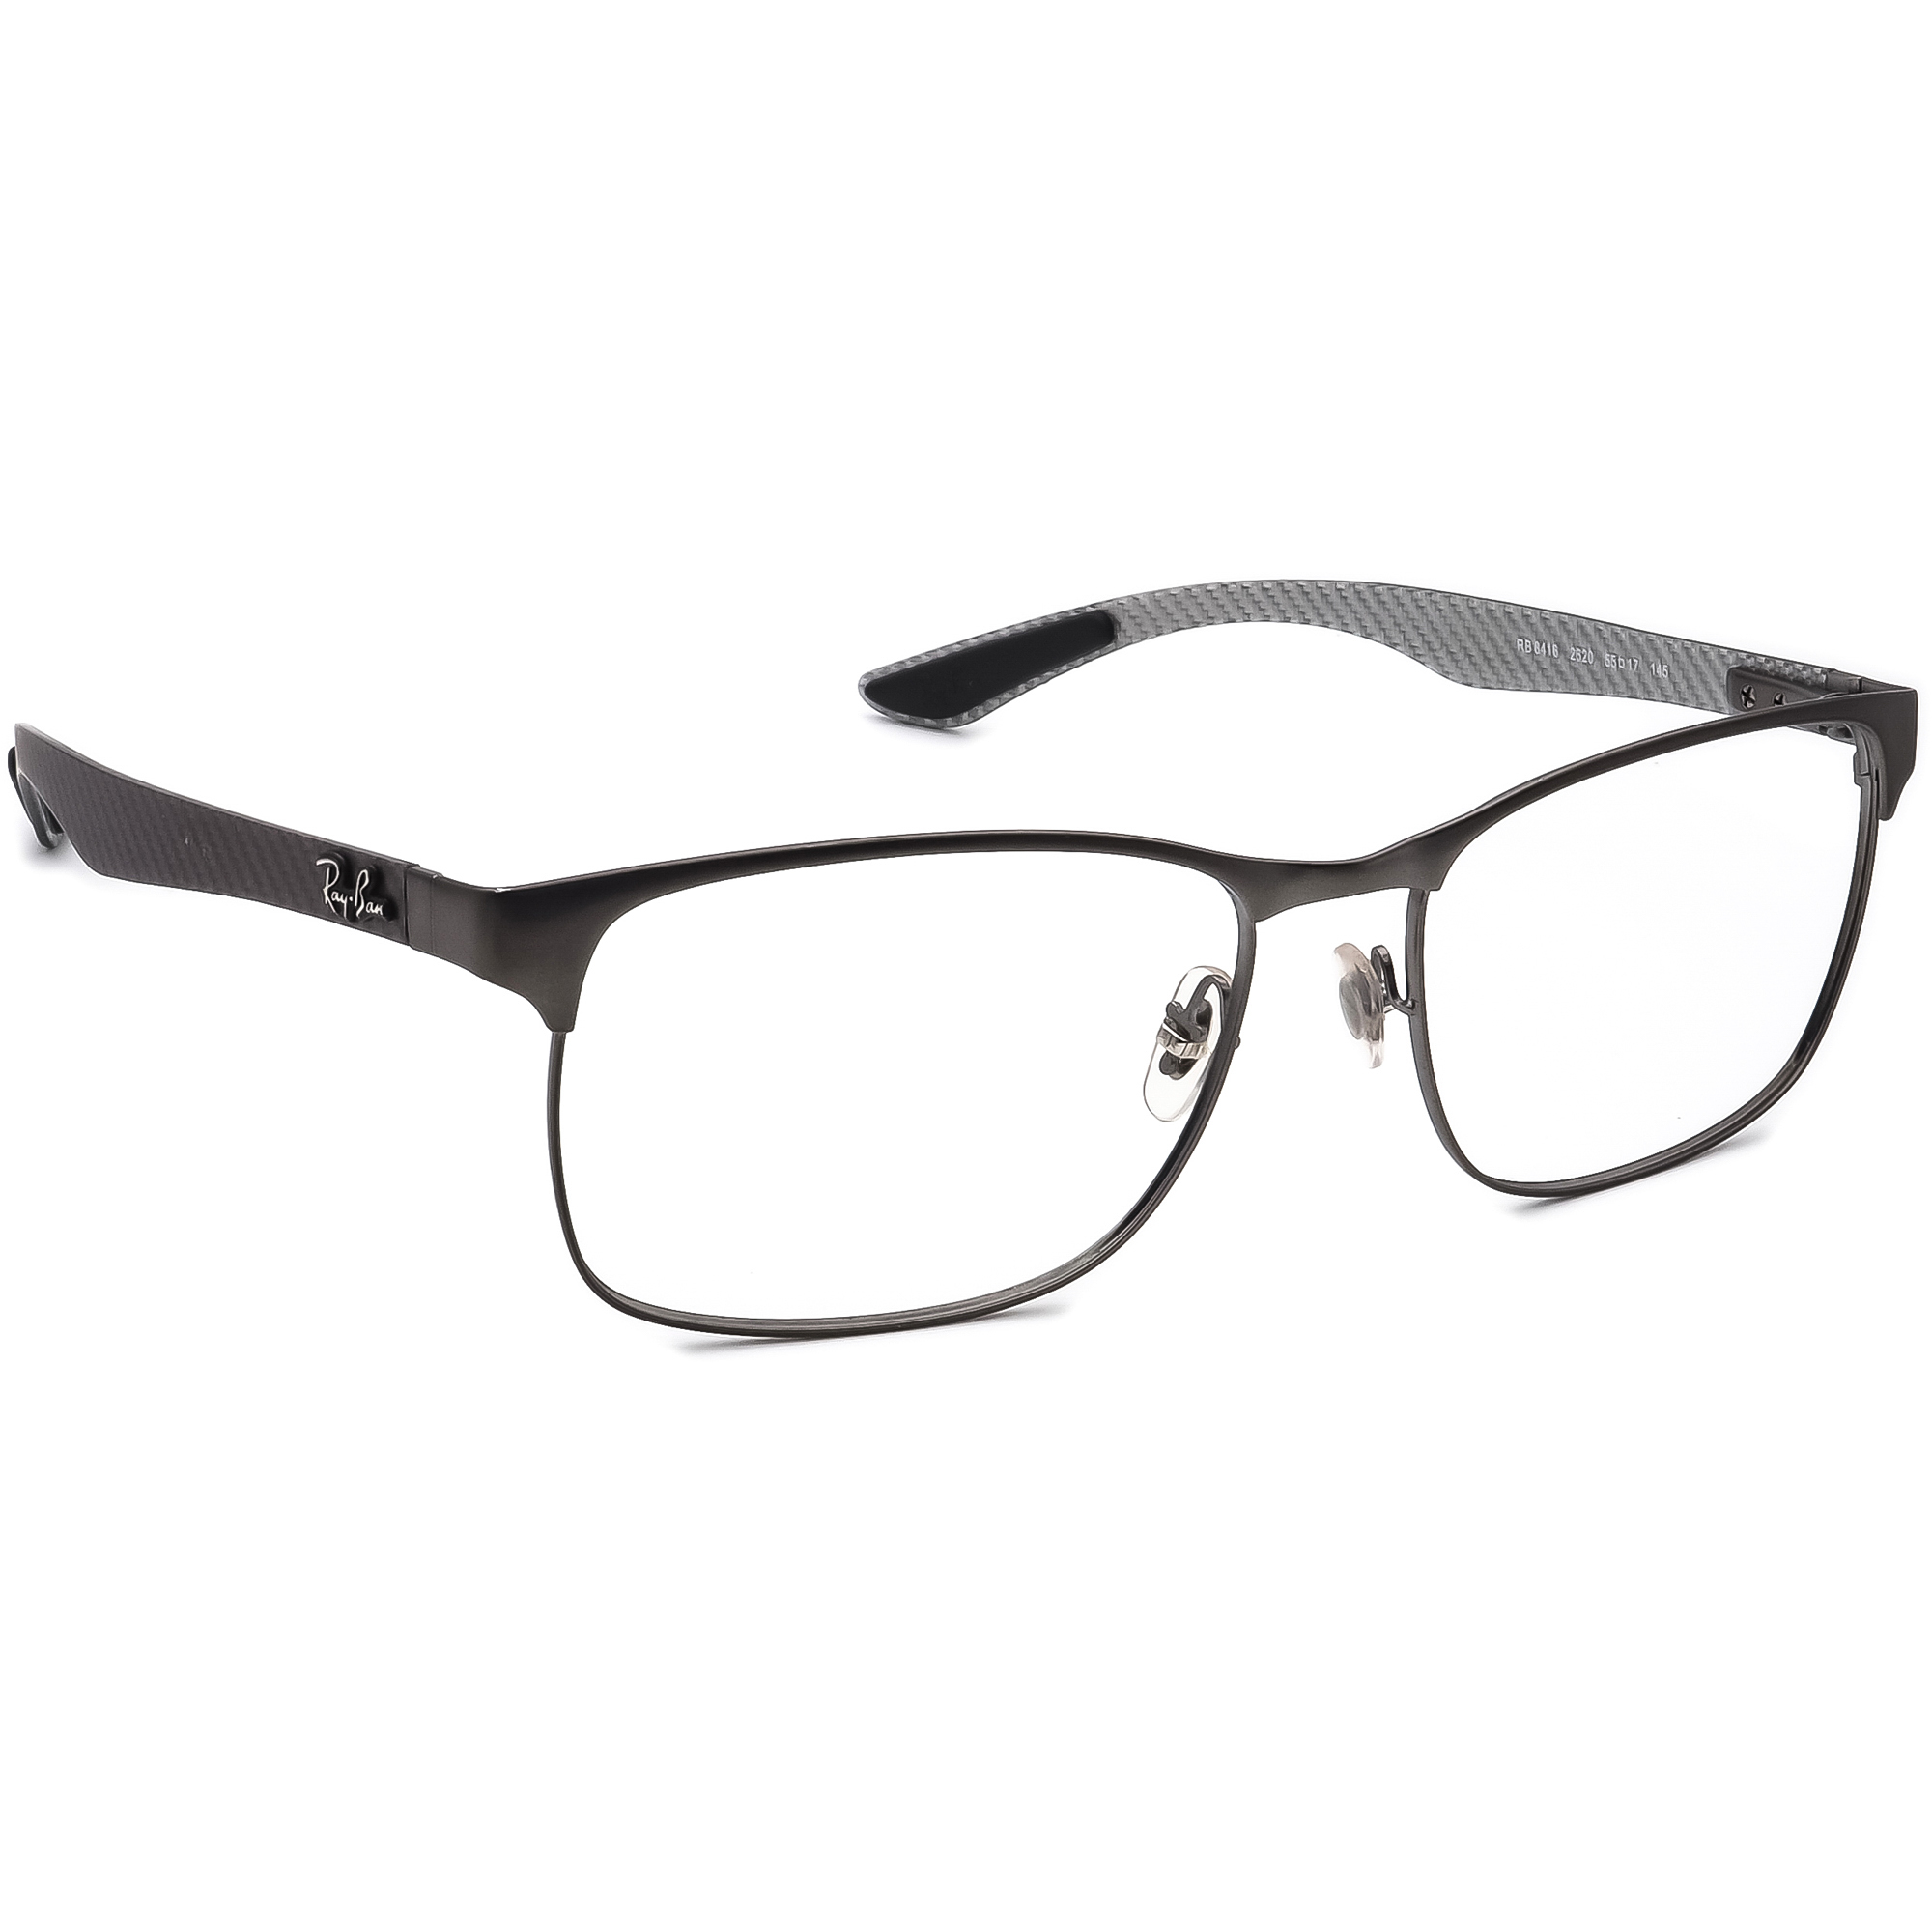 Ray Ban RB 8416 2620 Carbon Fiber Eyeglasses